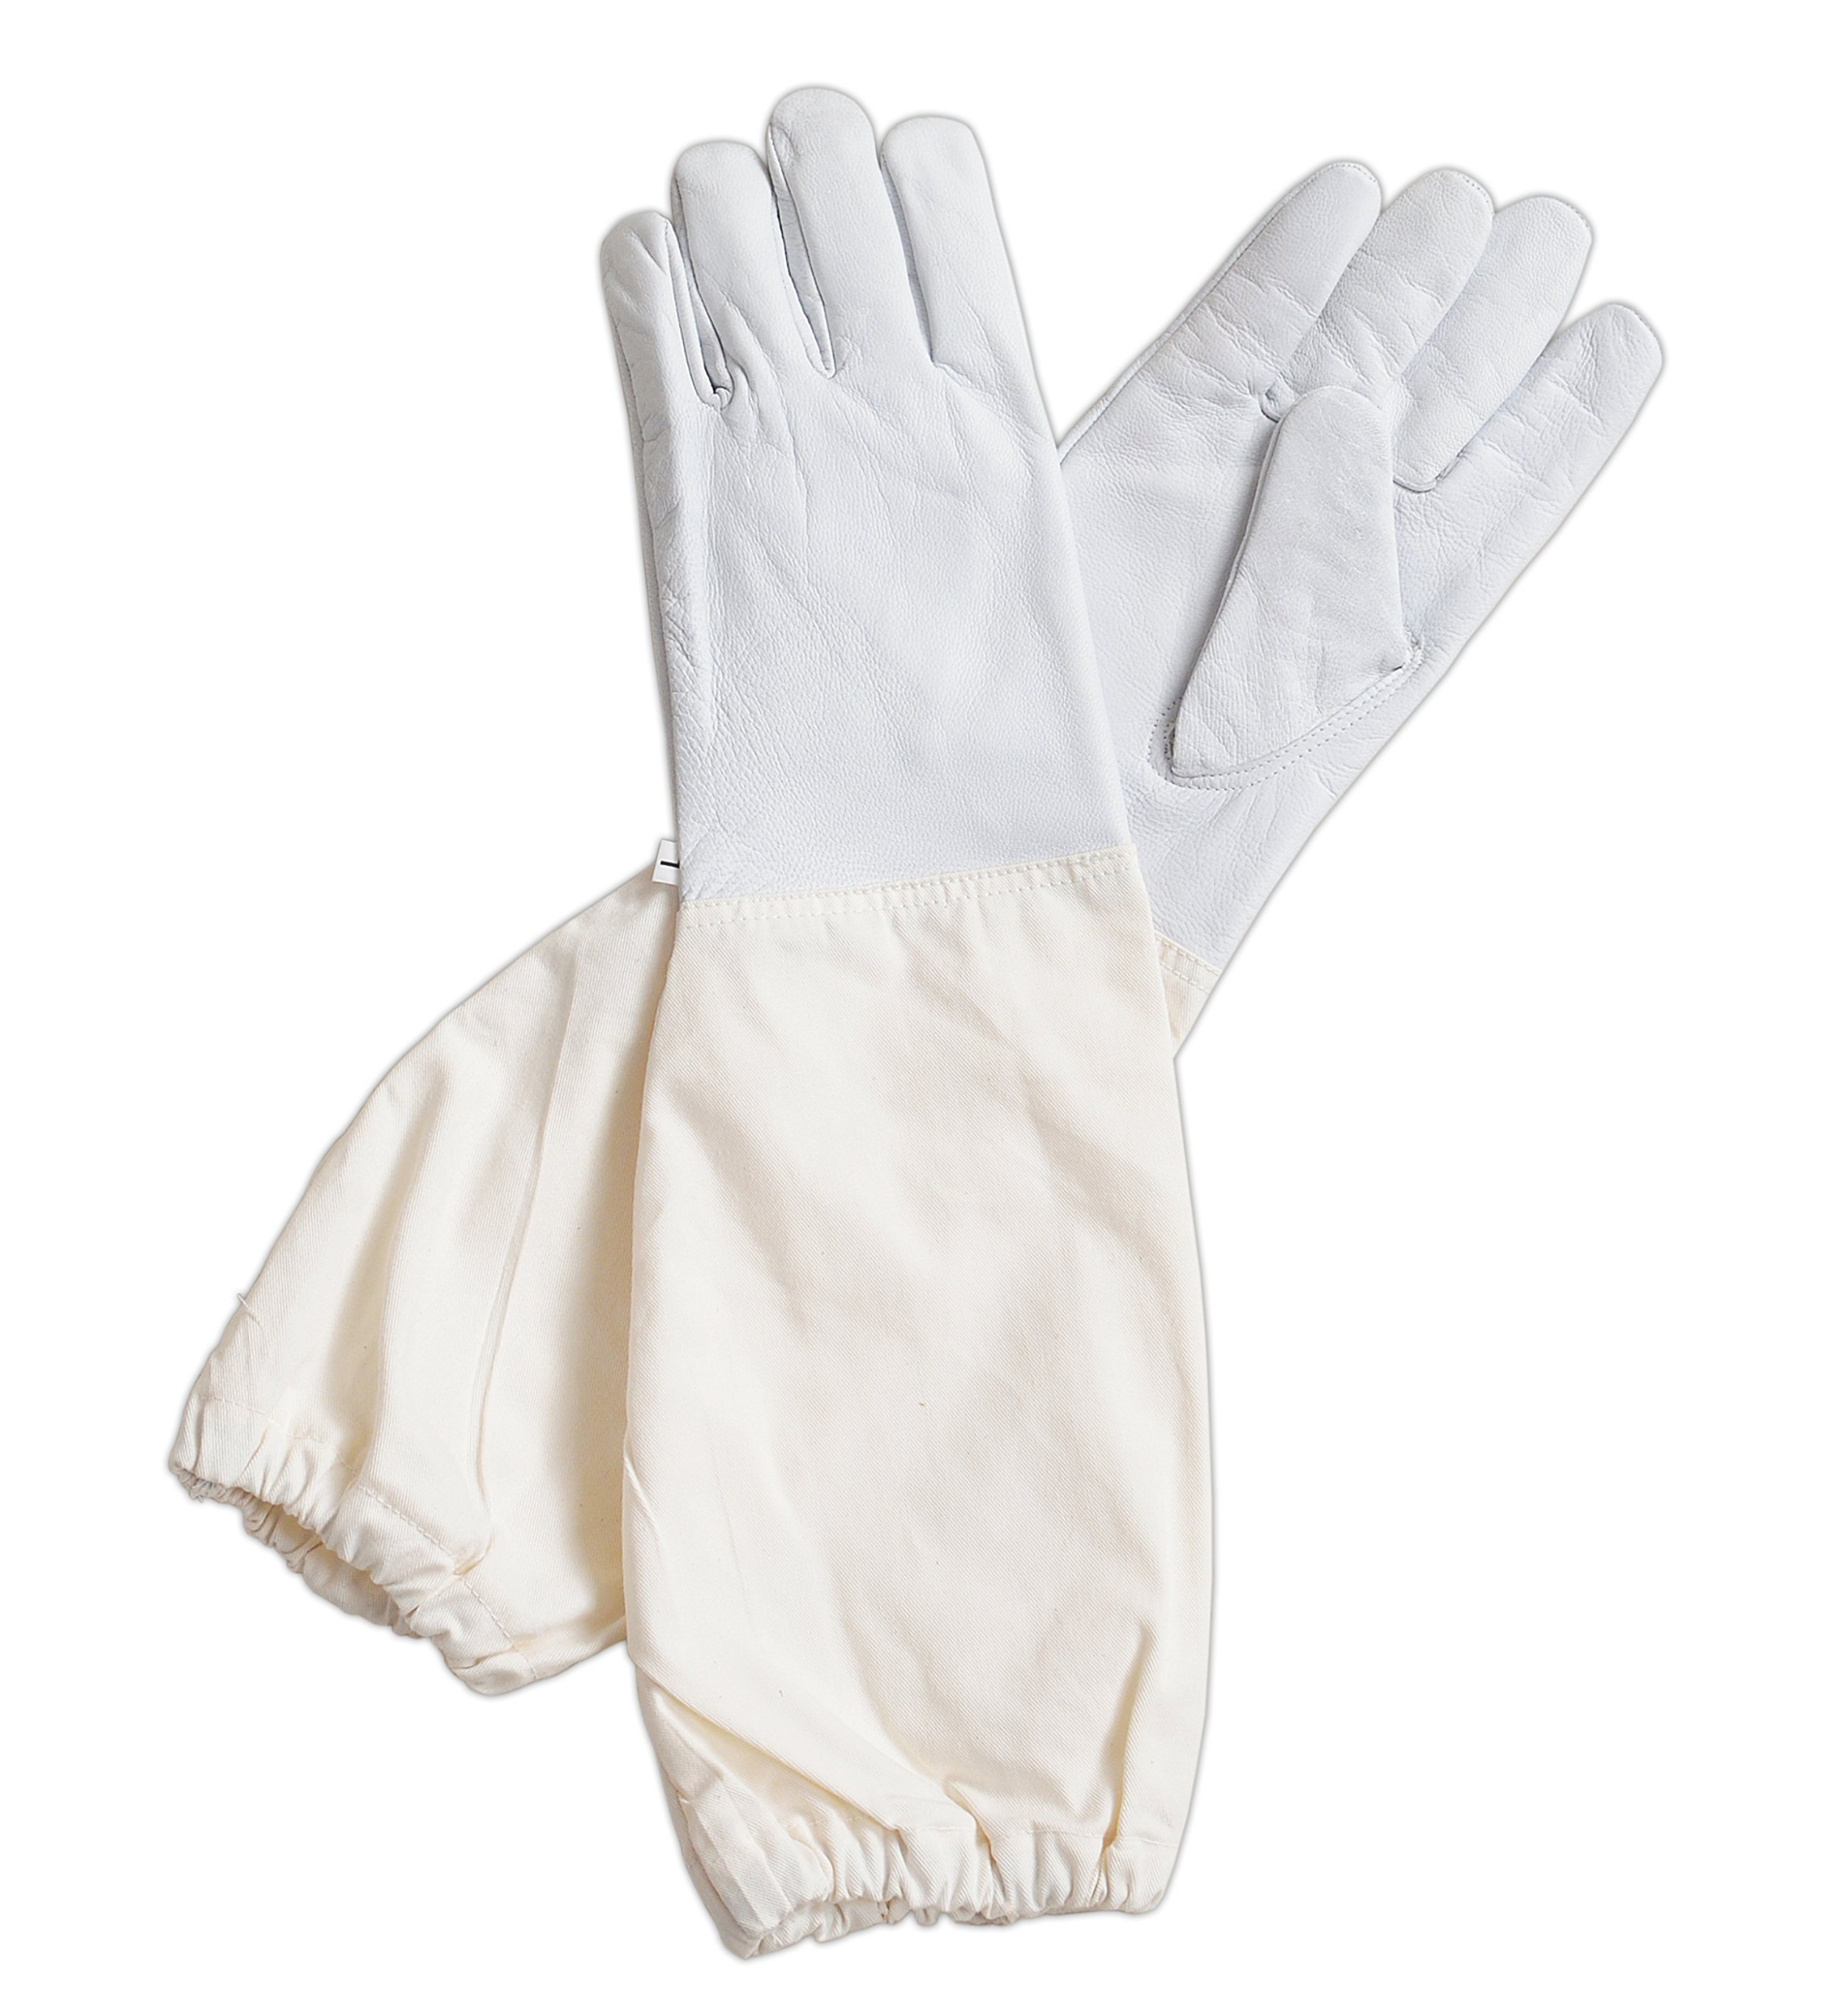 Forest Beekeeping Supply - Goatskin Leather Beekeeper's Glove with Long Canvas Sleeve and Elastic Cuff- Large